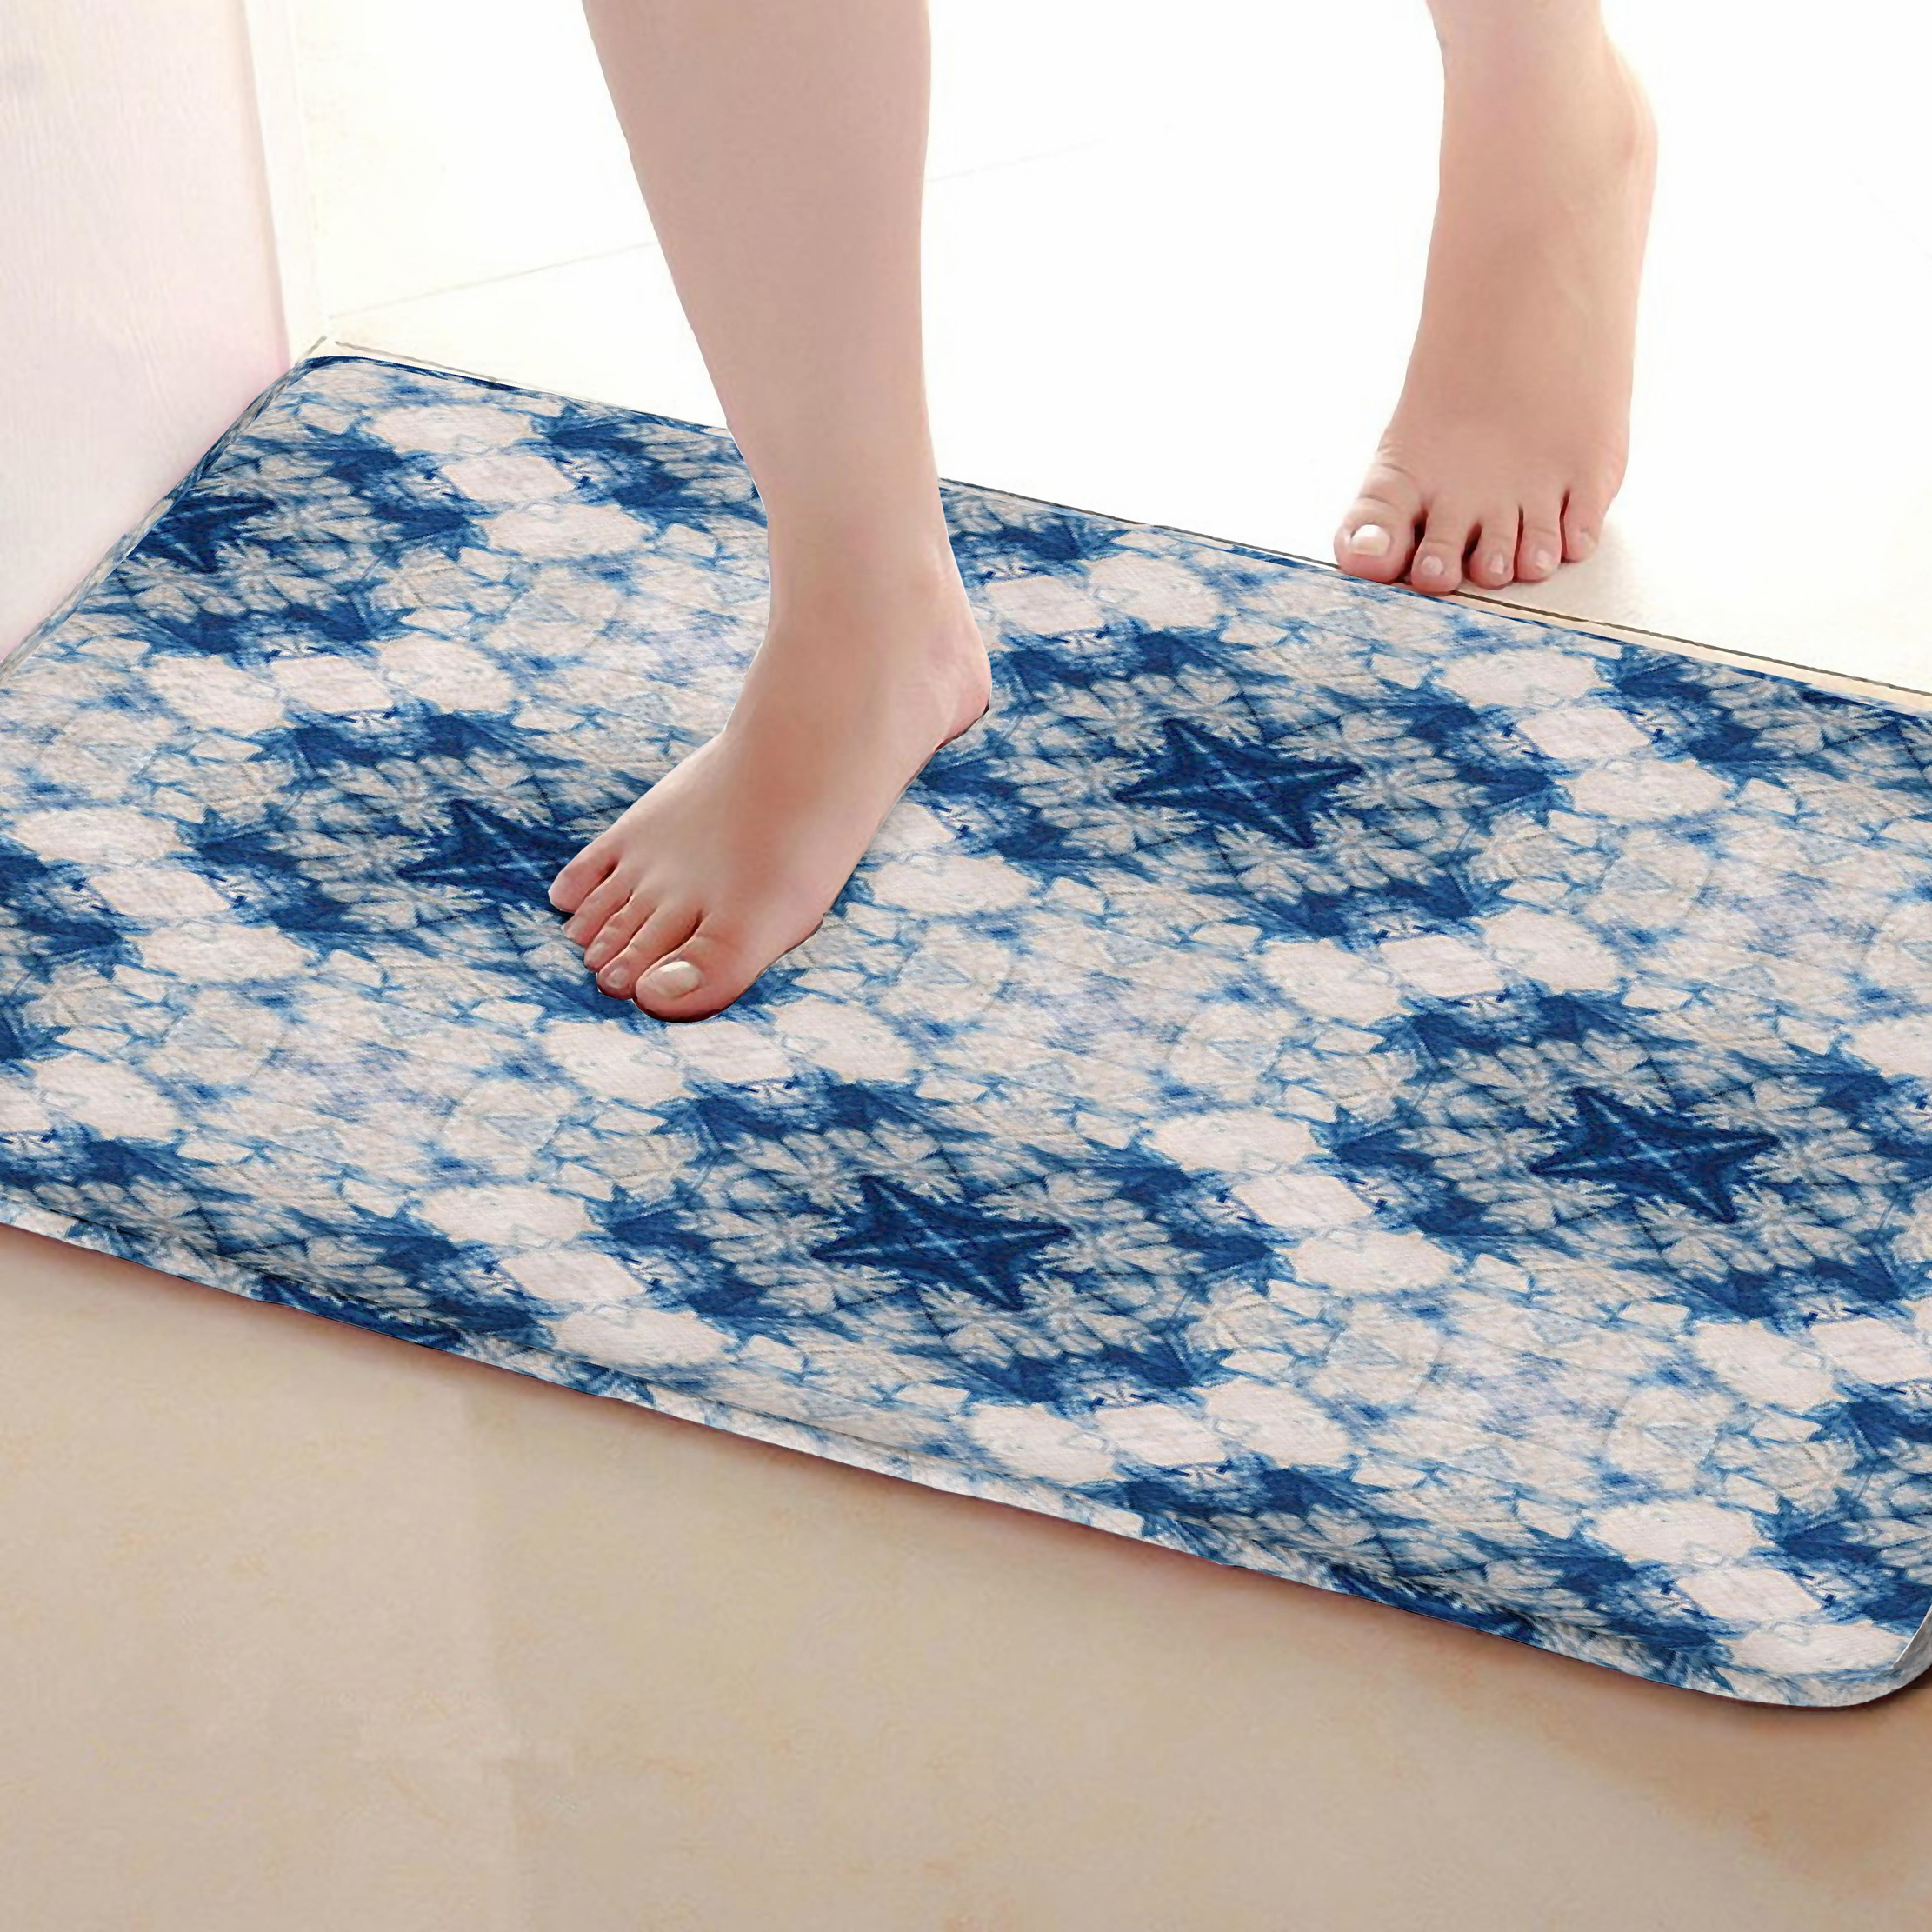 Blue Style Bathroom Mat,Funny Anti Skid Bath Mat,Shower Curtains Accessories,Matching Your Shower Curtain